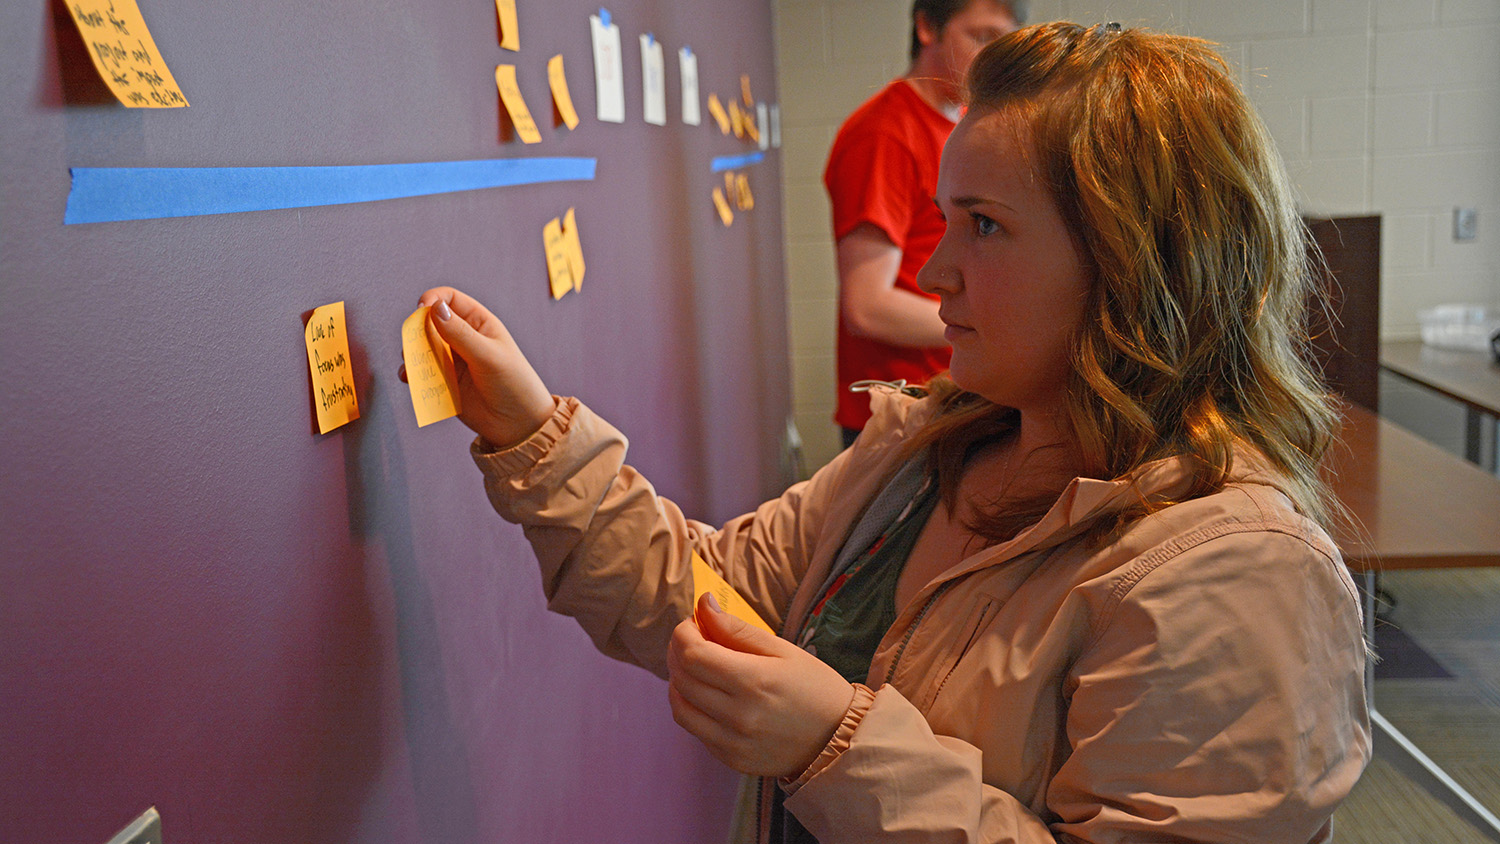 A student places a stickey note on a wall